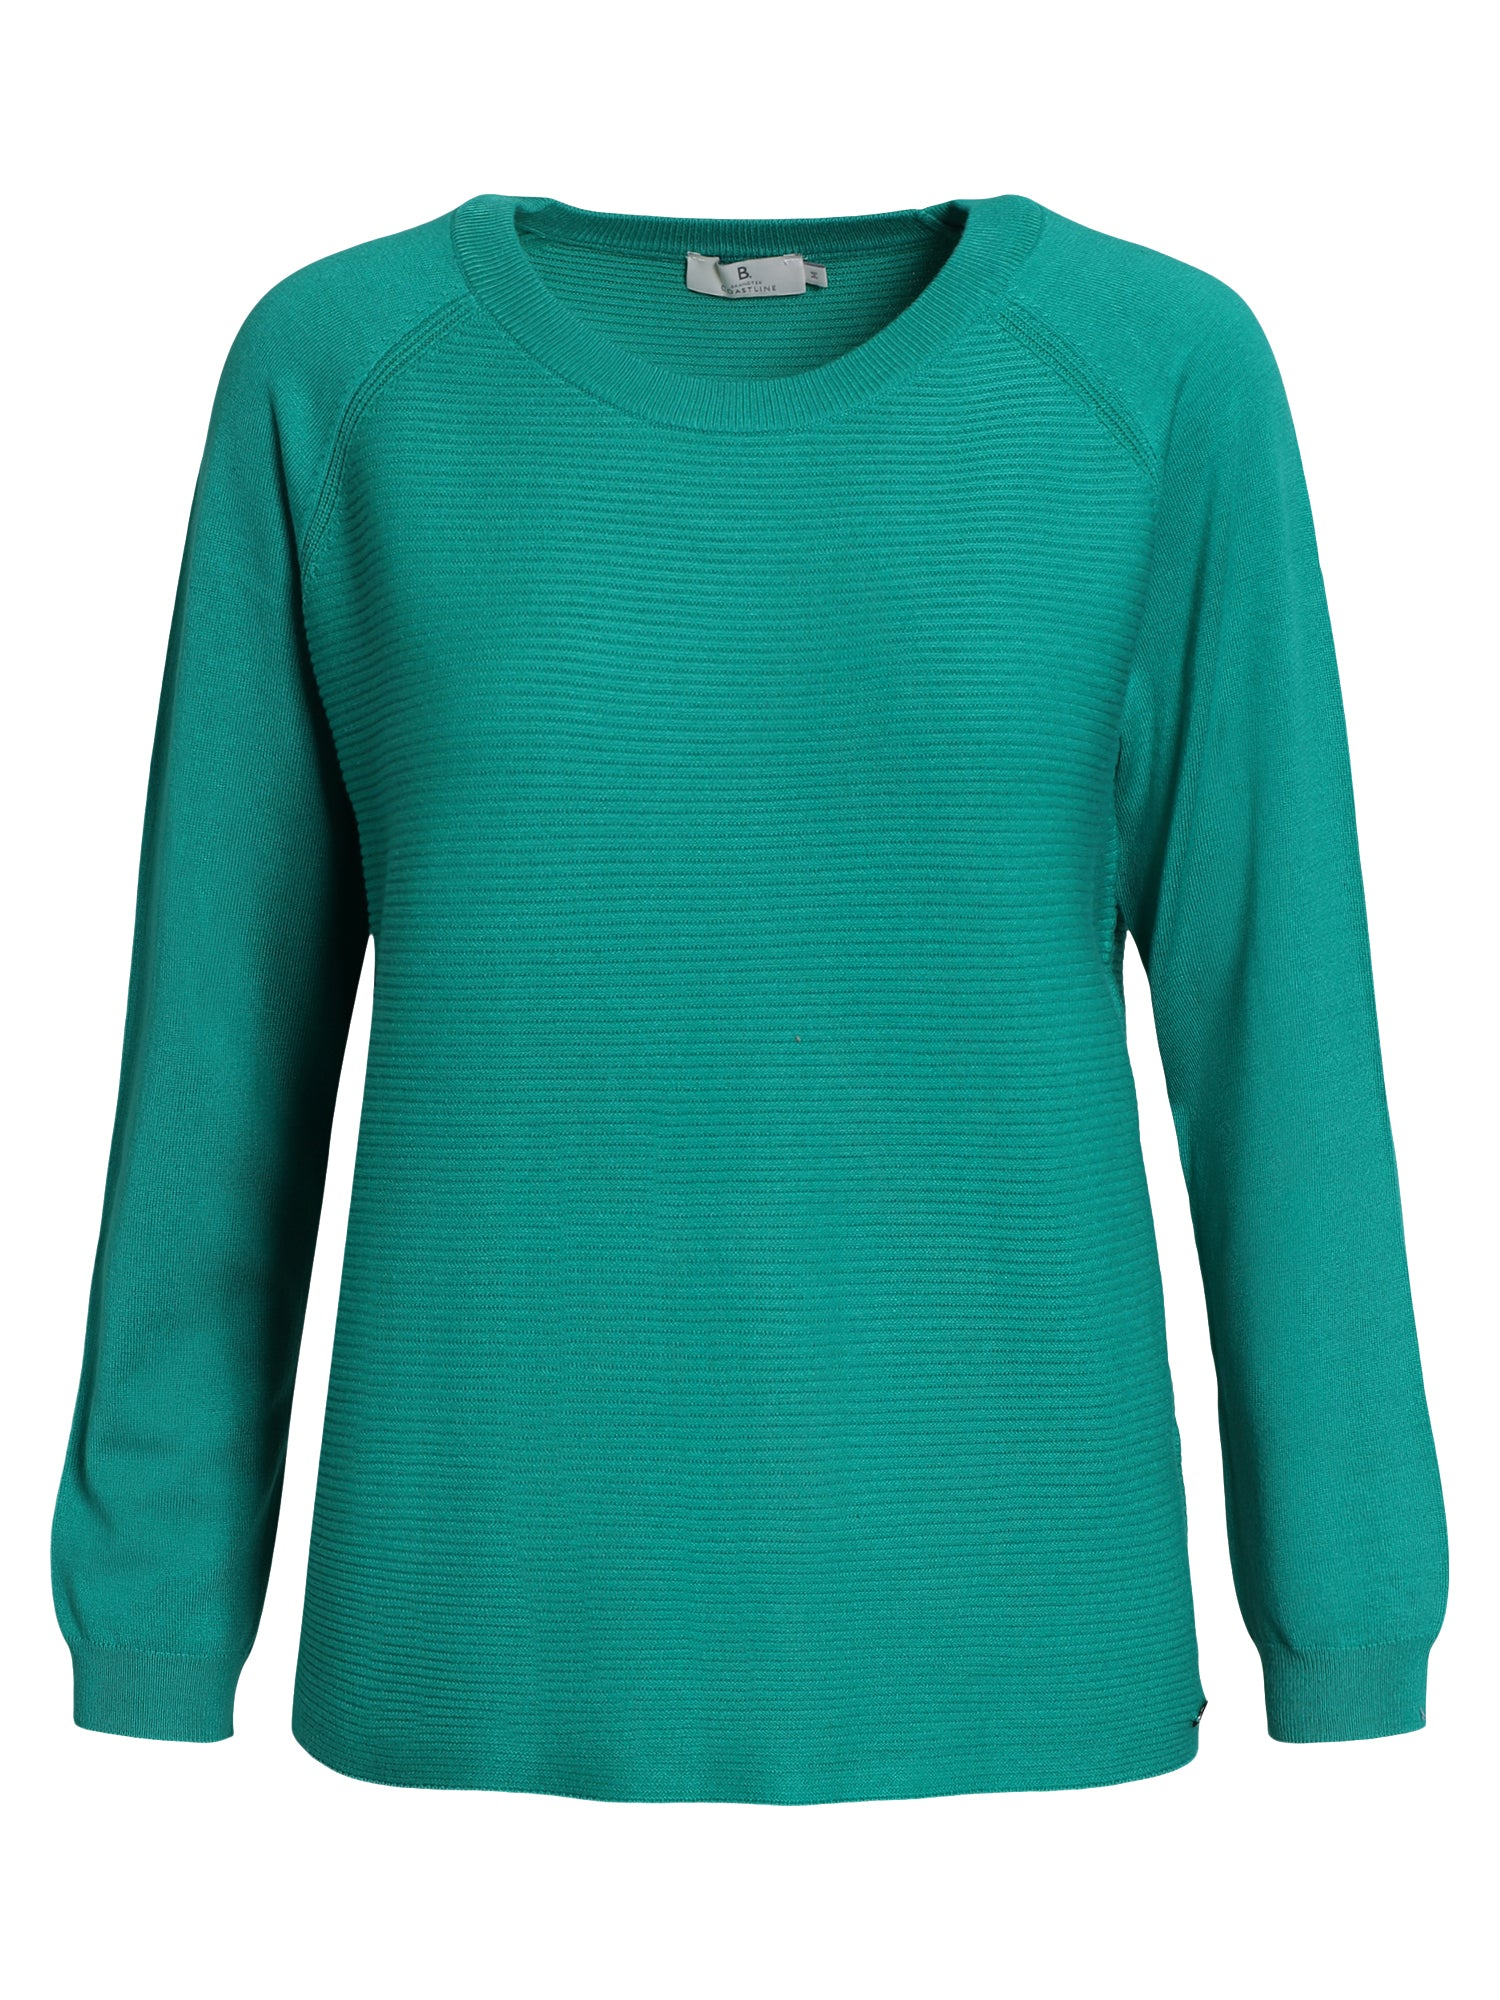 Image of   Pullover - Emerald